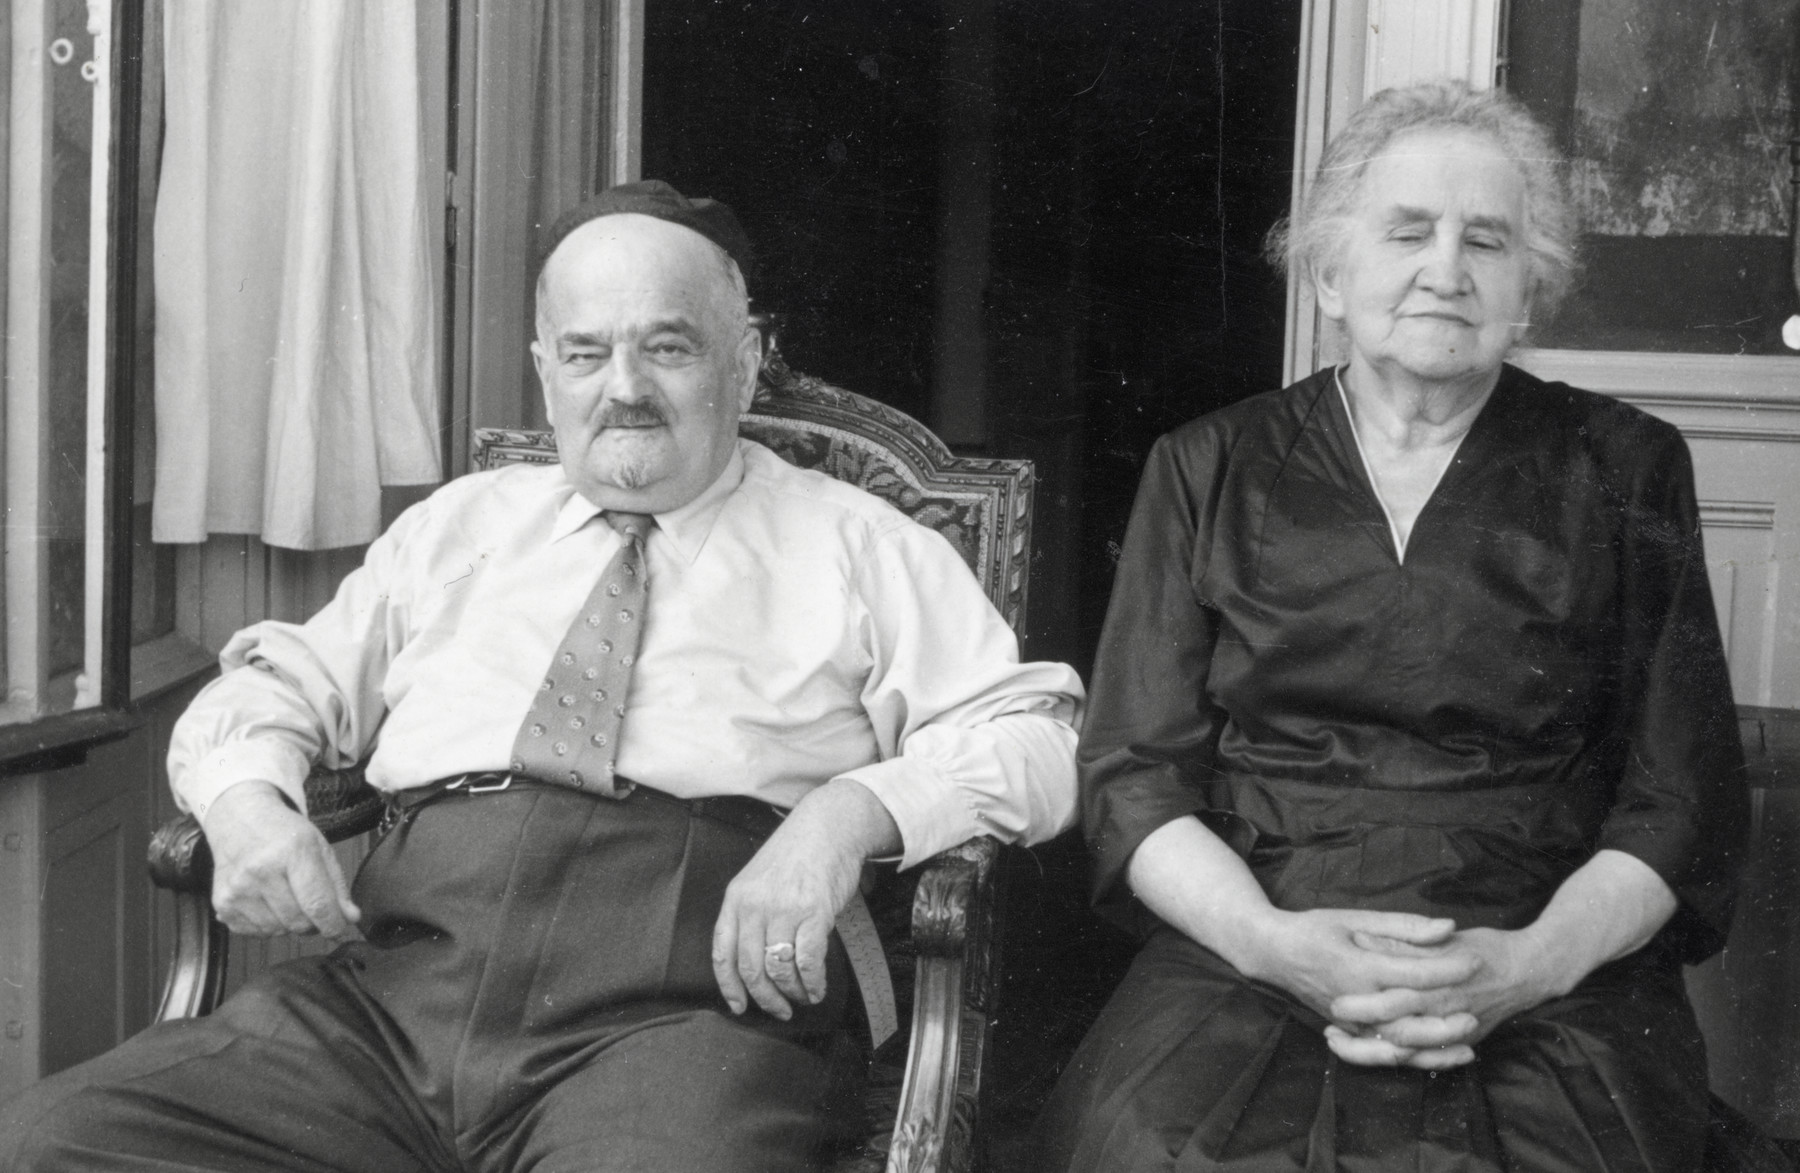 Postwar portraif of Albert Levy and Jeanne Belfort , grandparents of the donor.